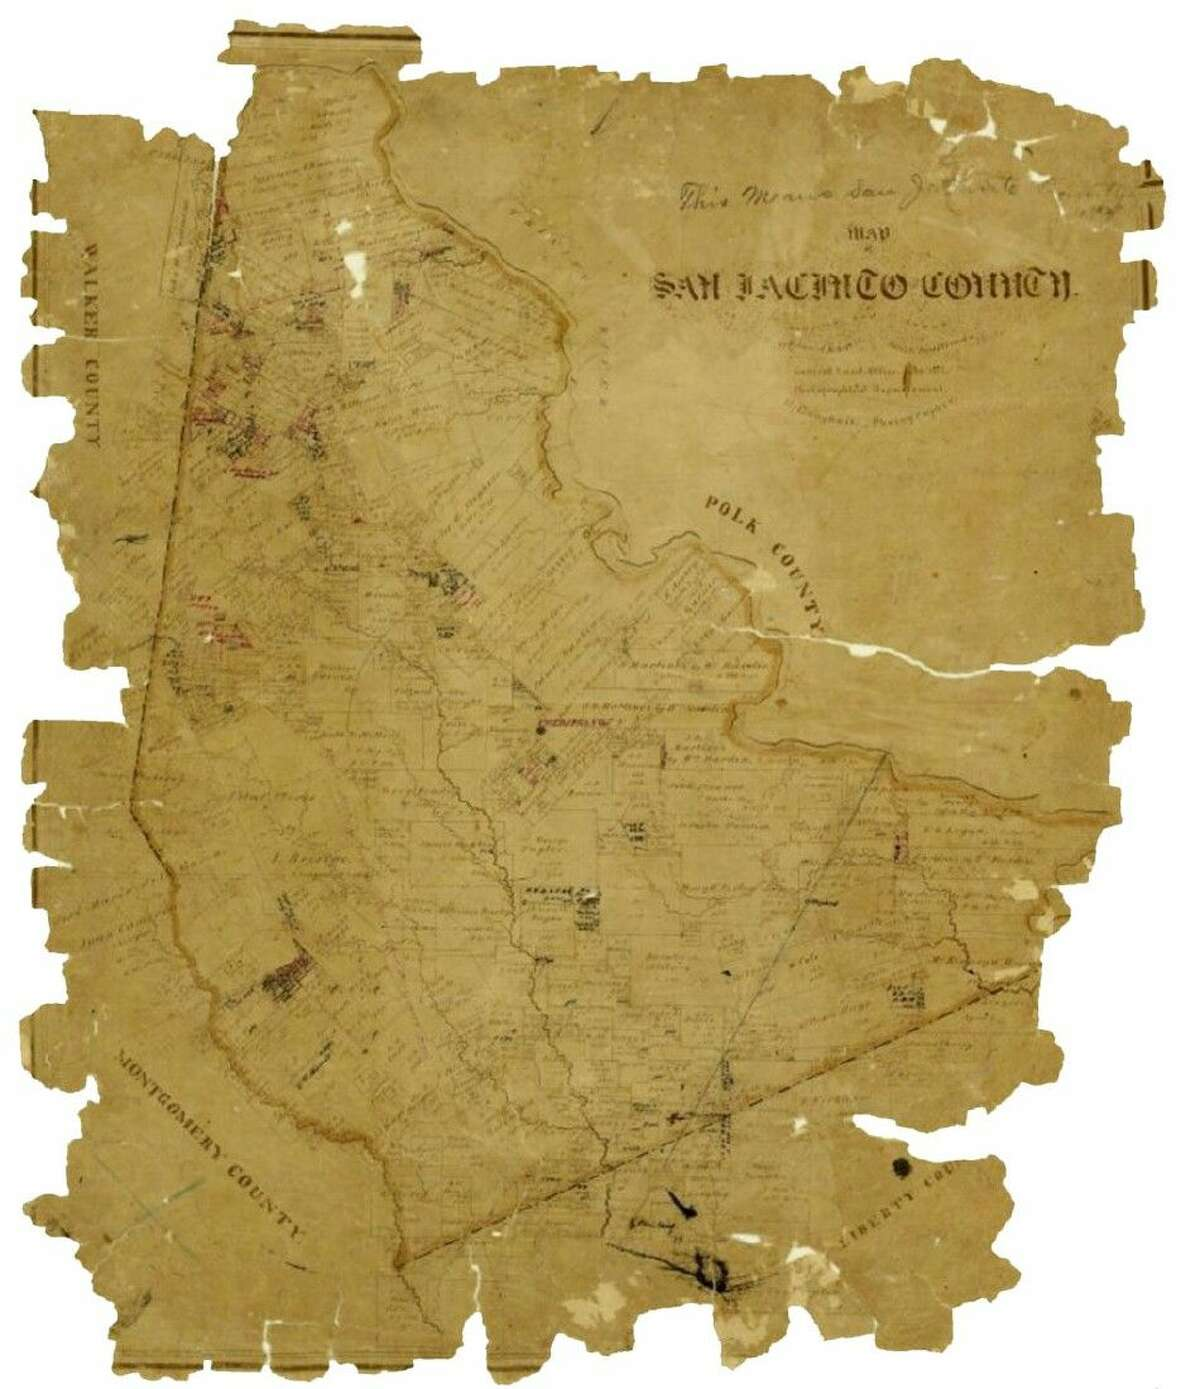 This image is of a San Jacinto County map drawn in 1872 and kept in the collection of the Texas General Land Office.